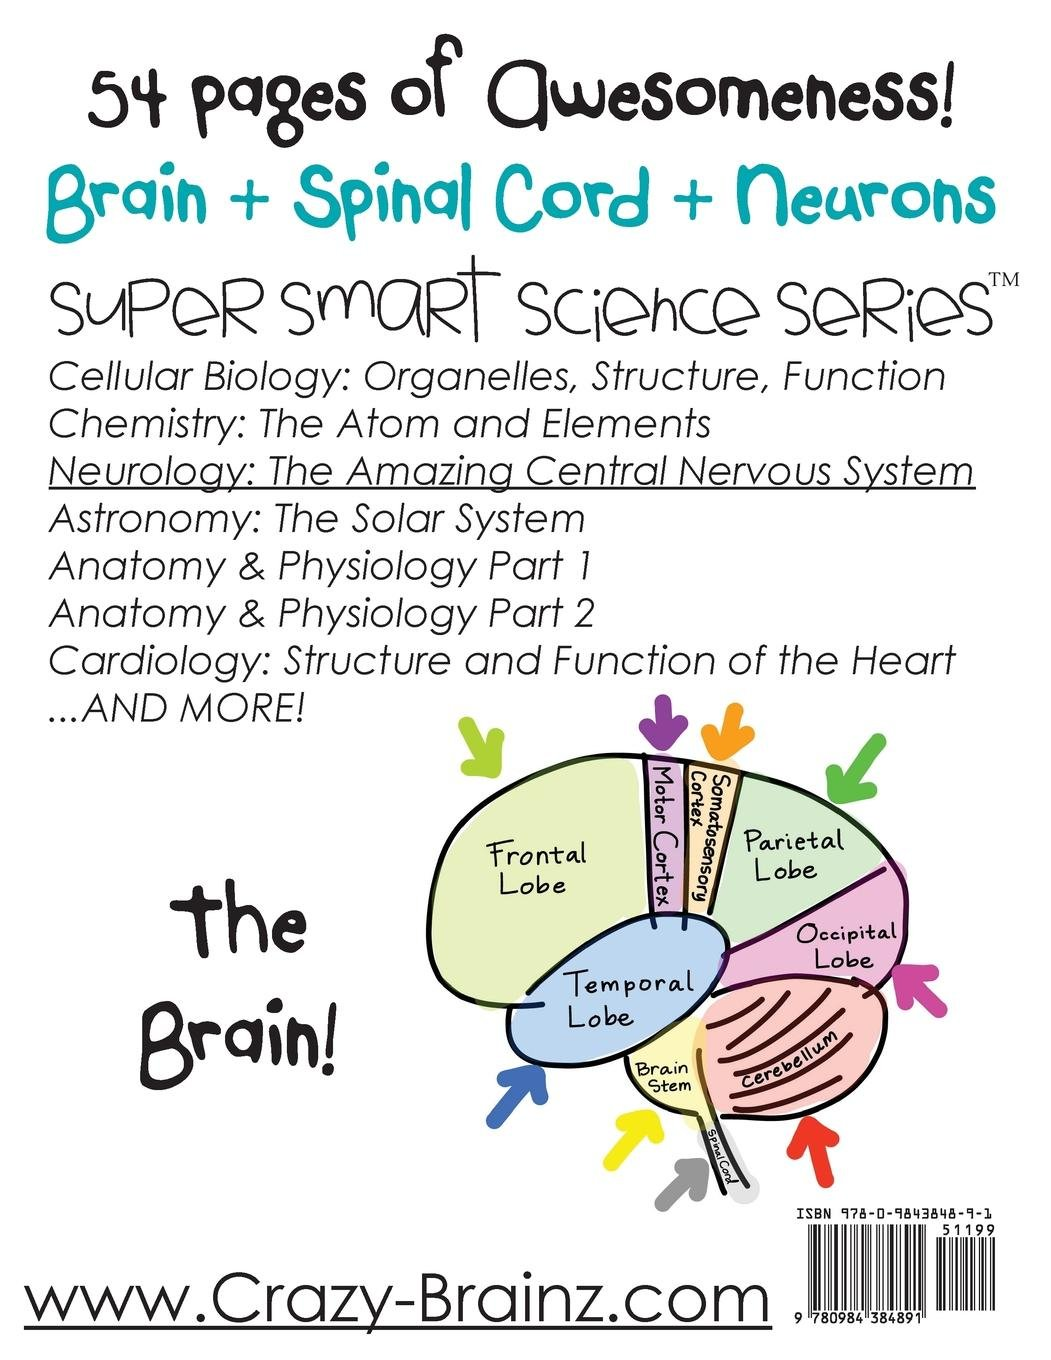 Neurology The Amazing Central Nervous System Super Smart Science